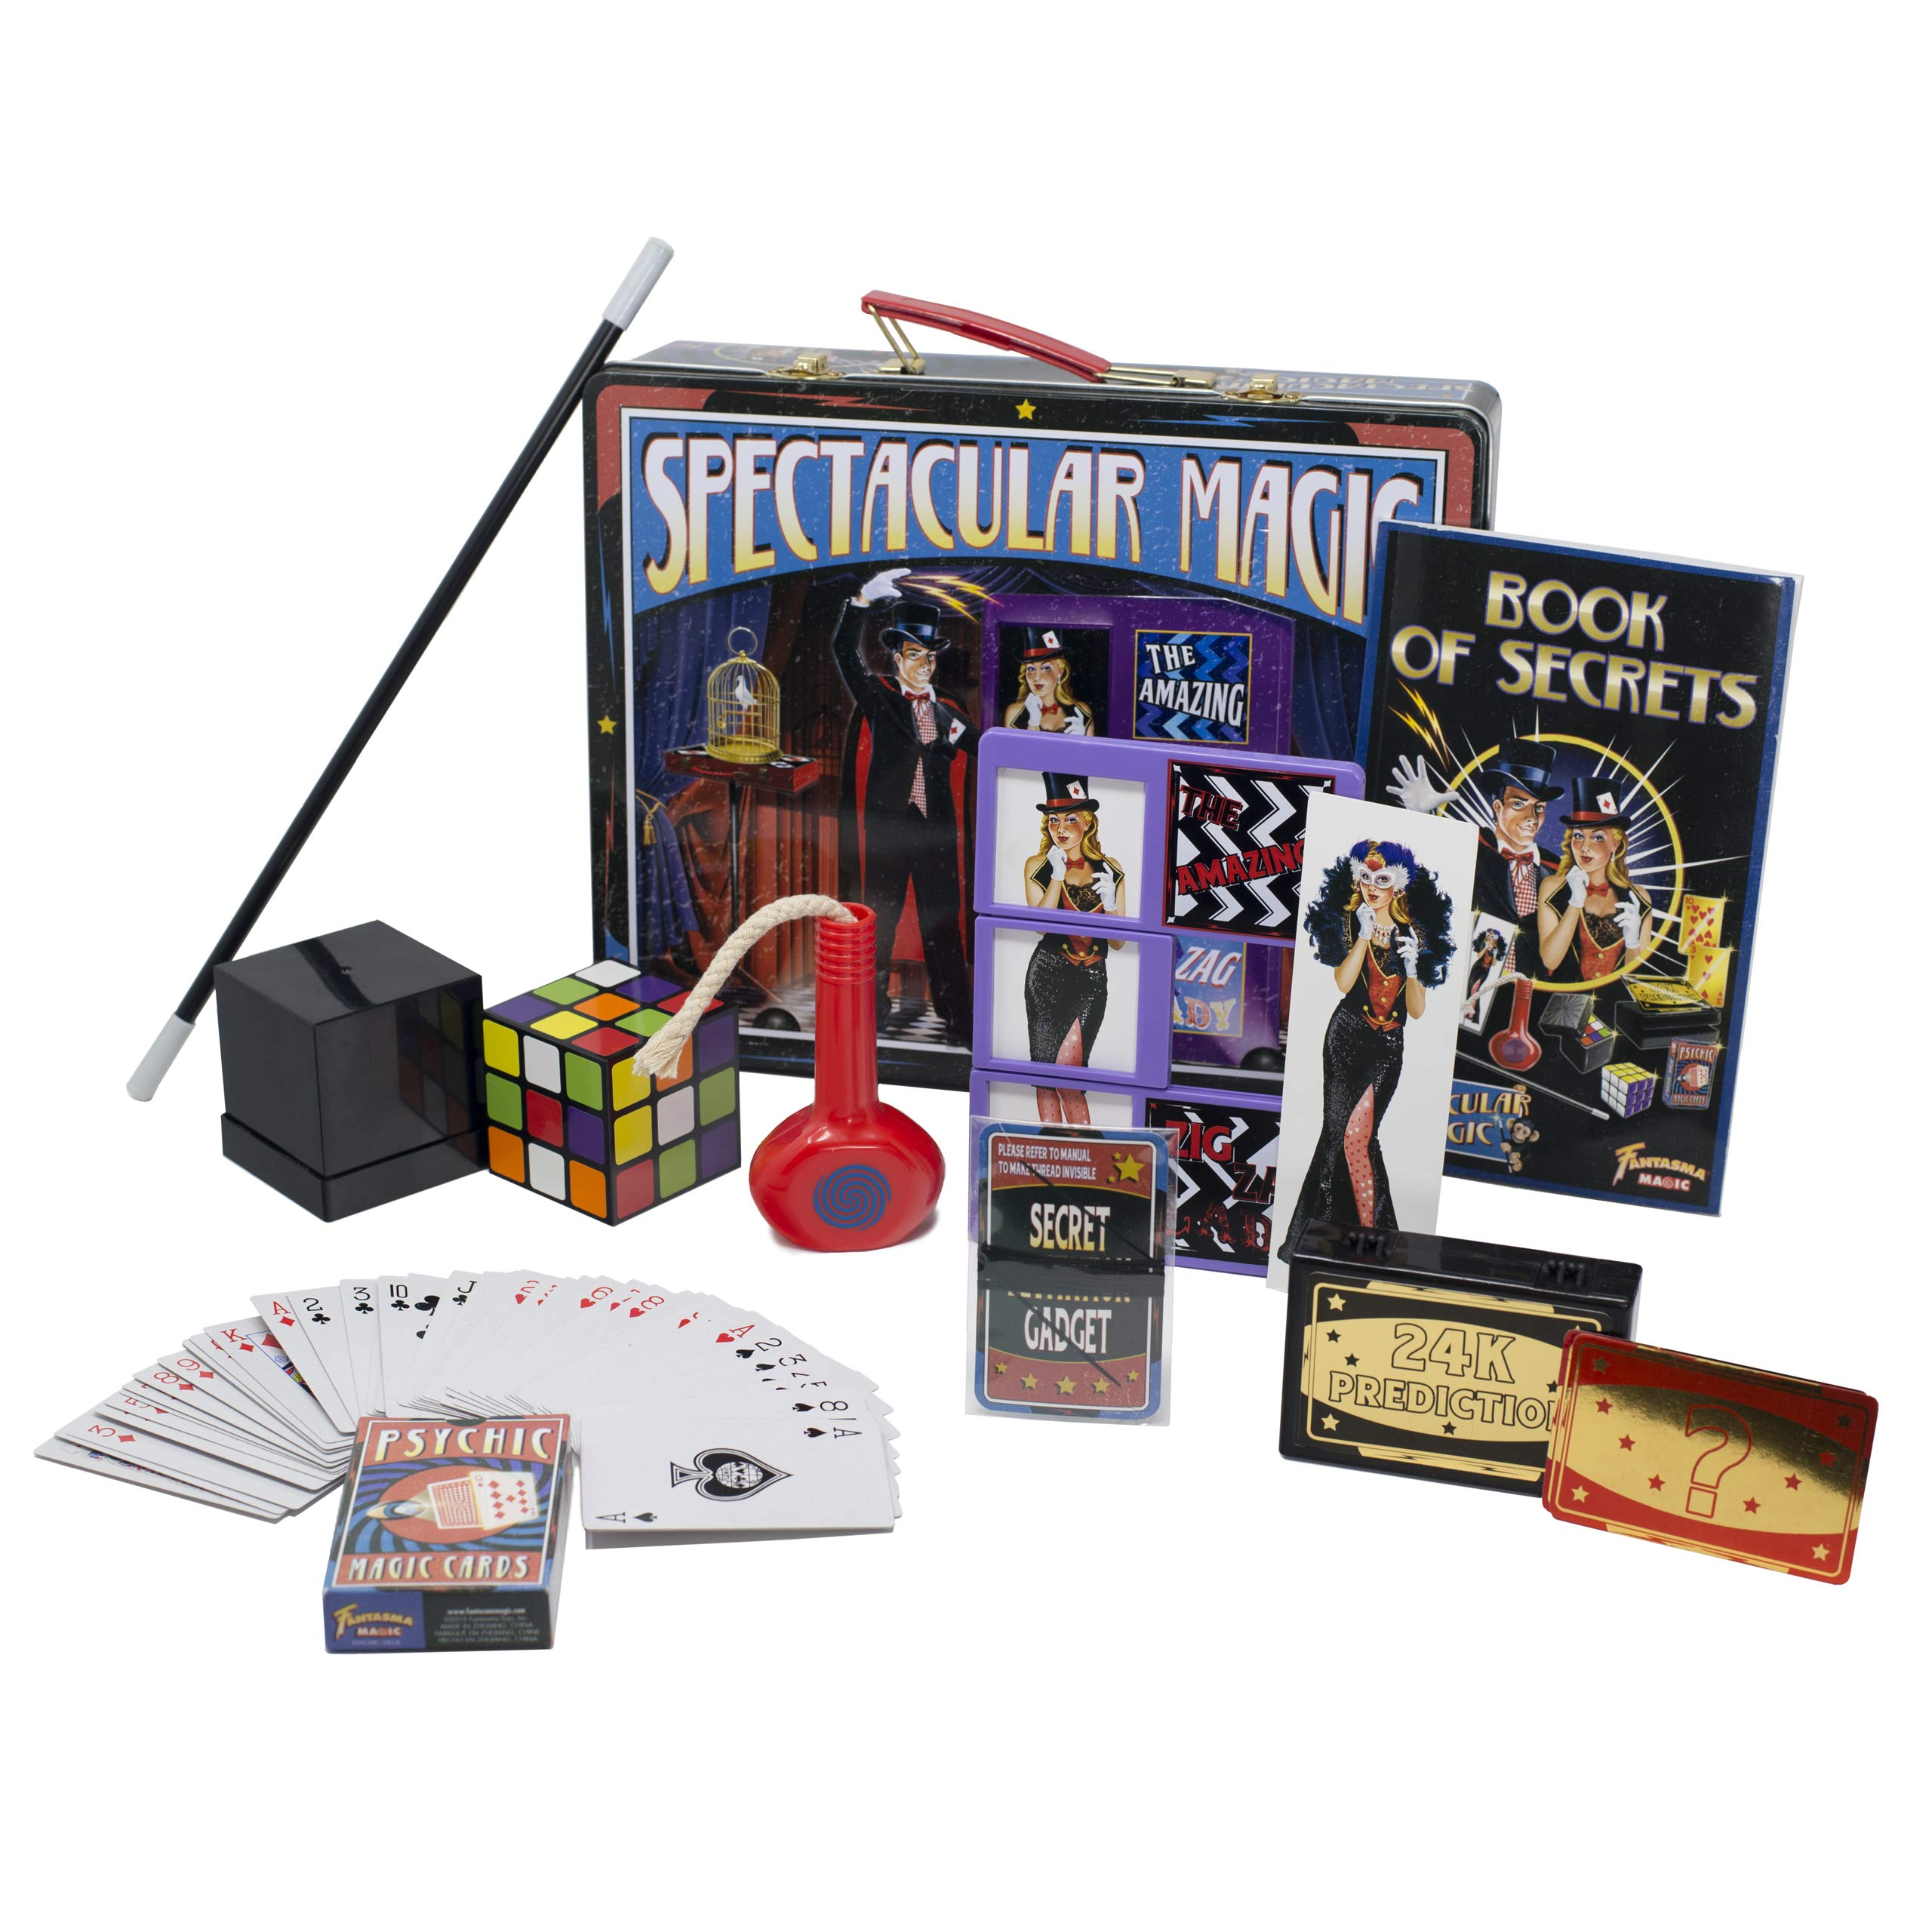 Fantasma Spectacular Magic Box Set for Kids - Magic Kit and Card Trick - Learn 135 Magic Tricks - Great for Boys and Girls 7 Years and Older